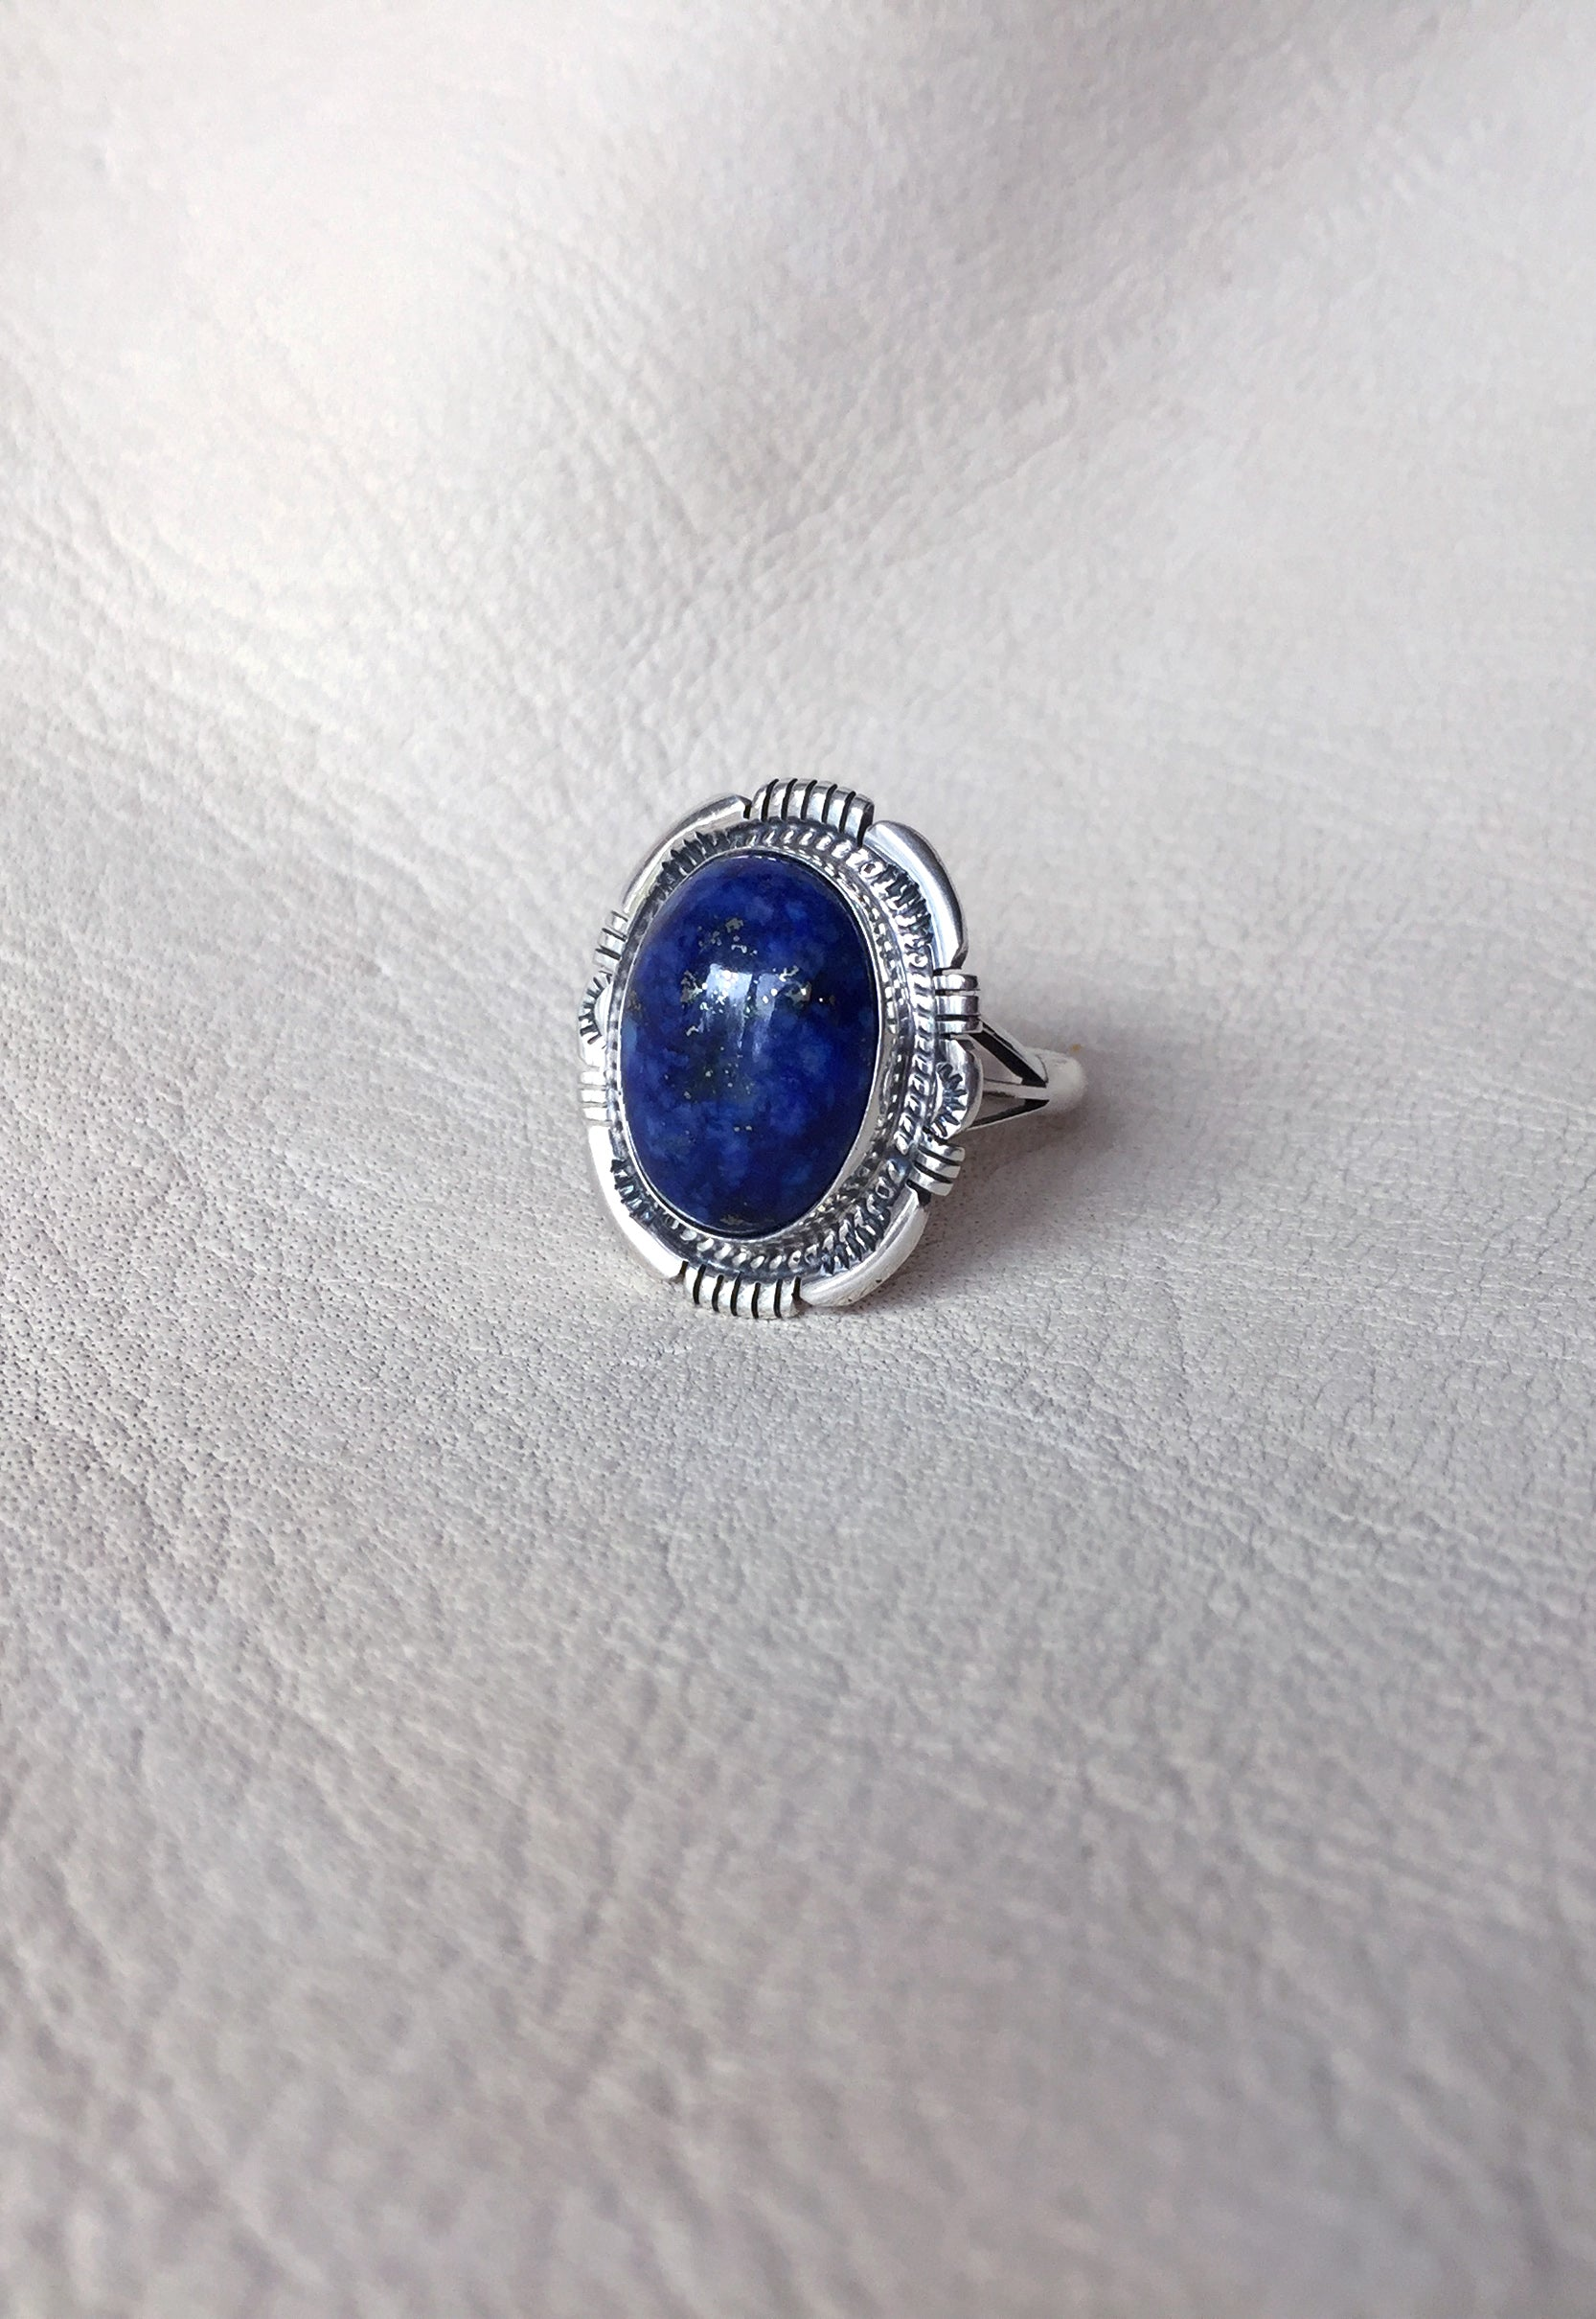 Native American Signed Lapis Lazuli Ring